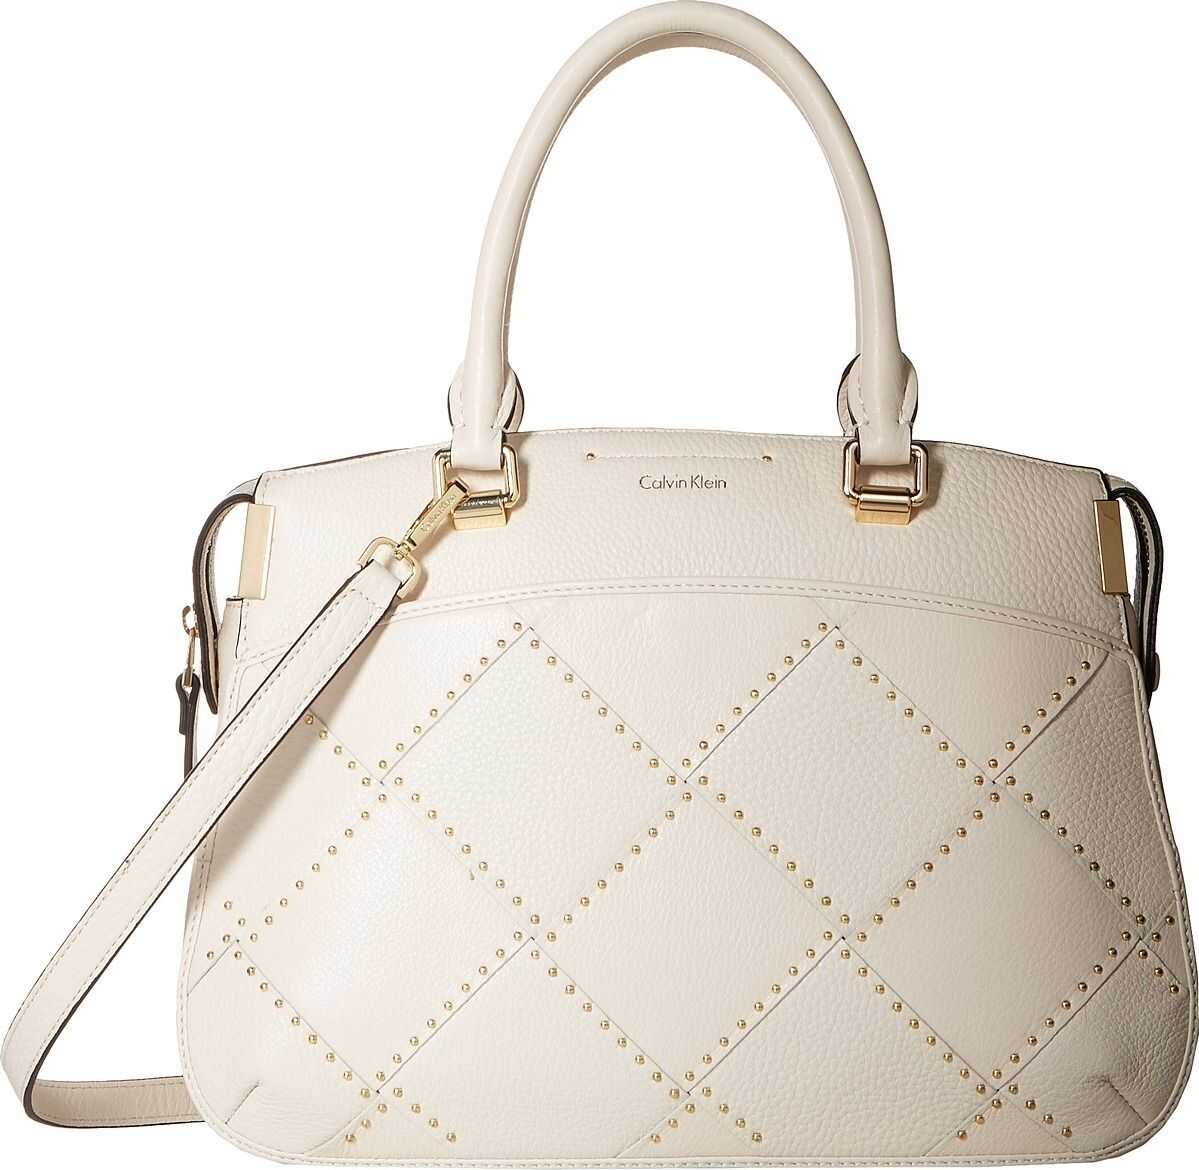 Calvin Klein Raelynn Pebble Leather Outline Stud Satchel Cherub White